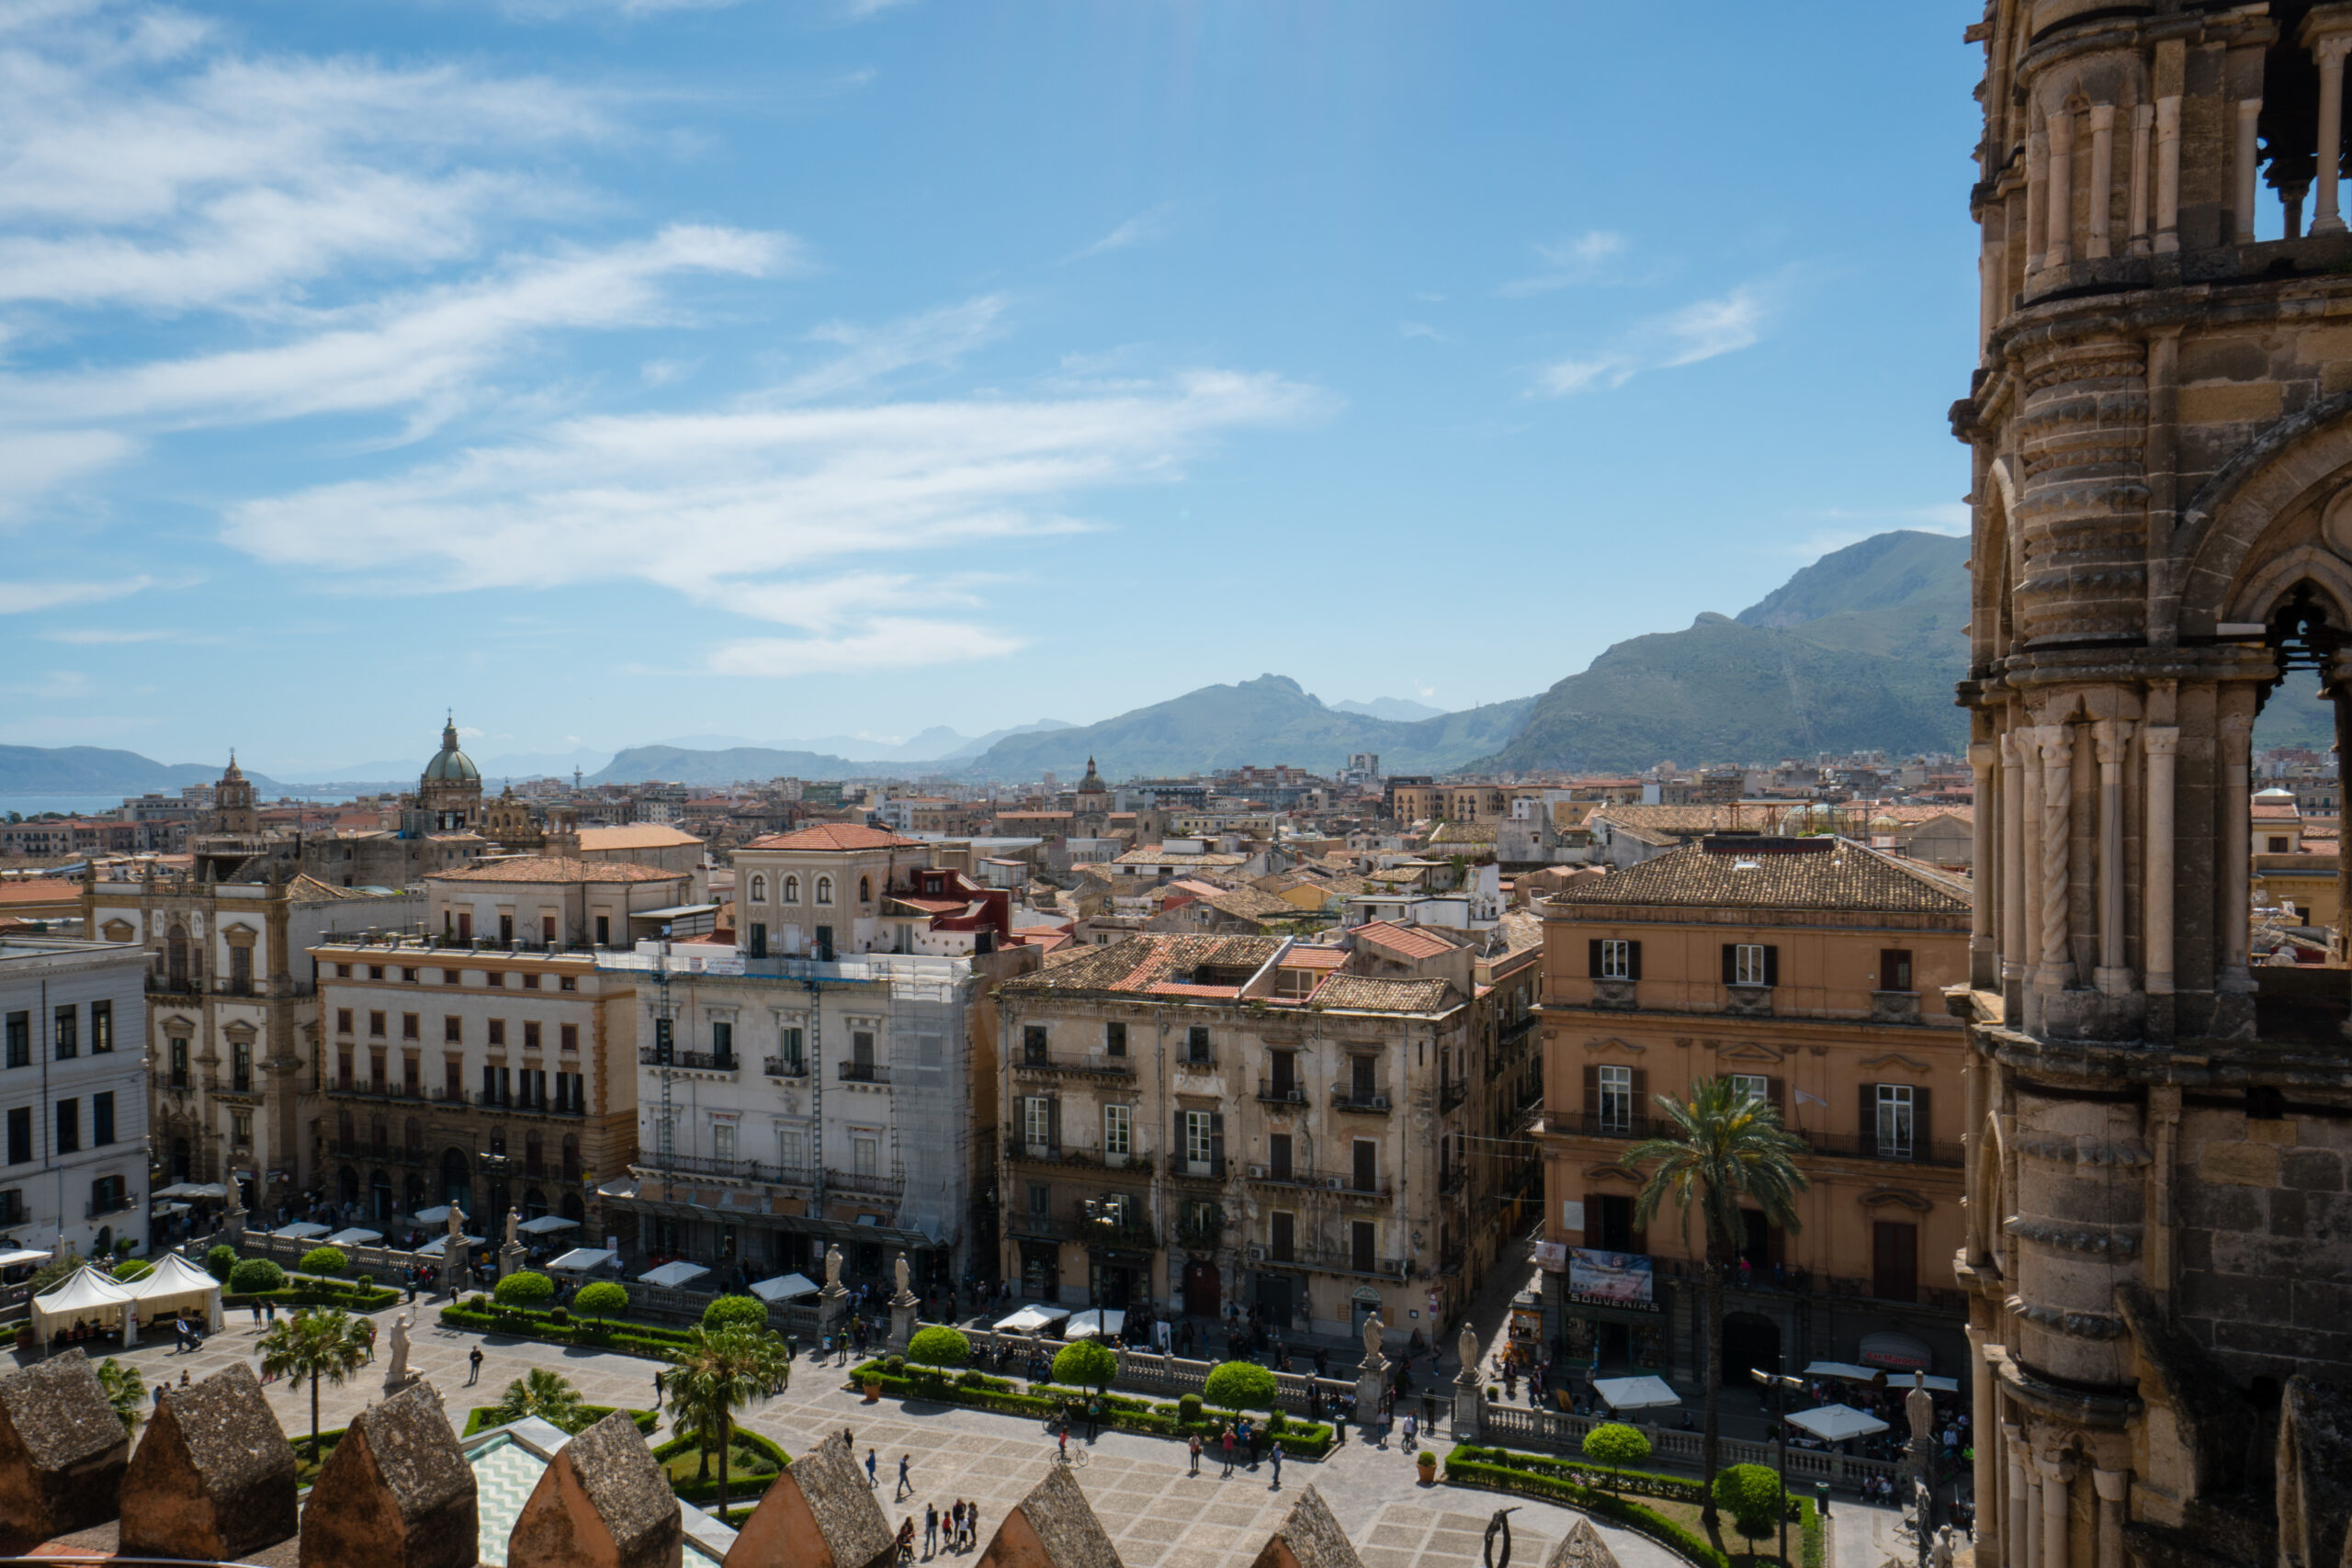 View of Palermo, Sicily, and mountains in the distance